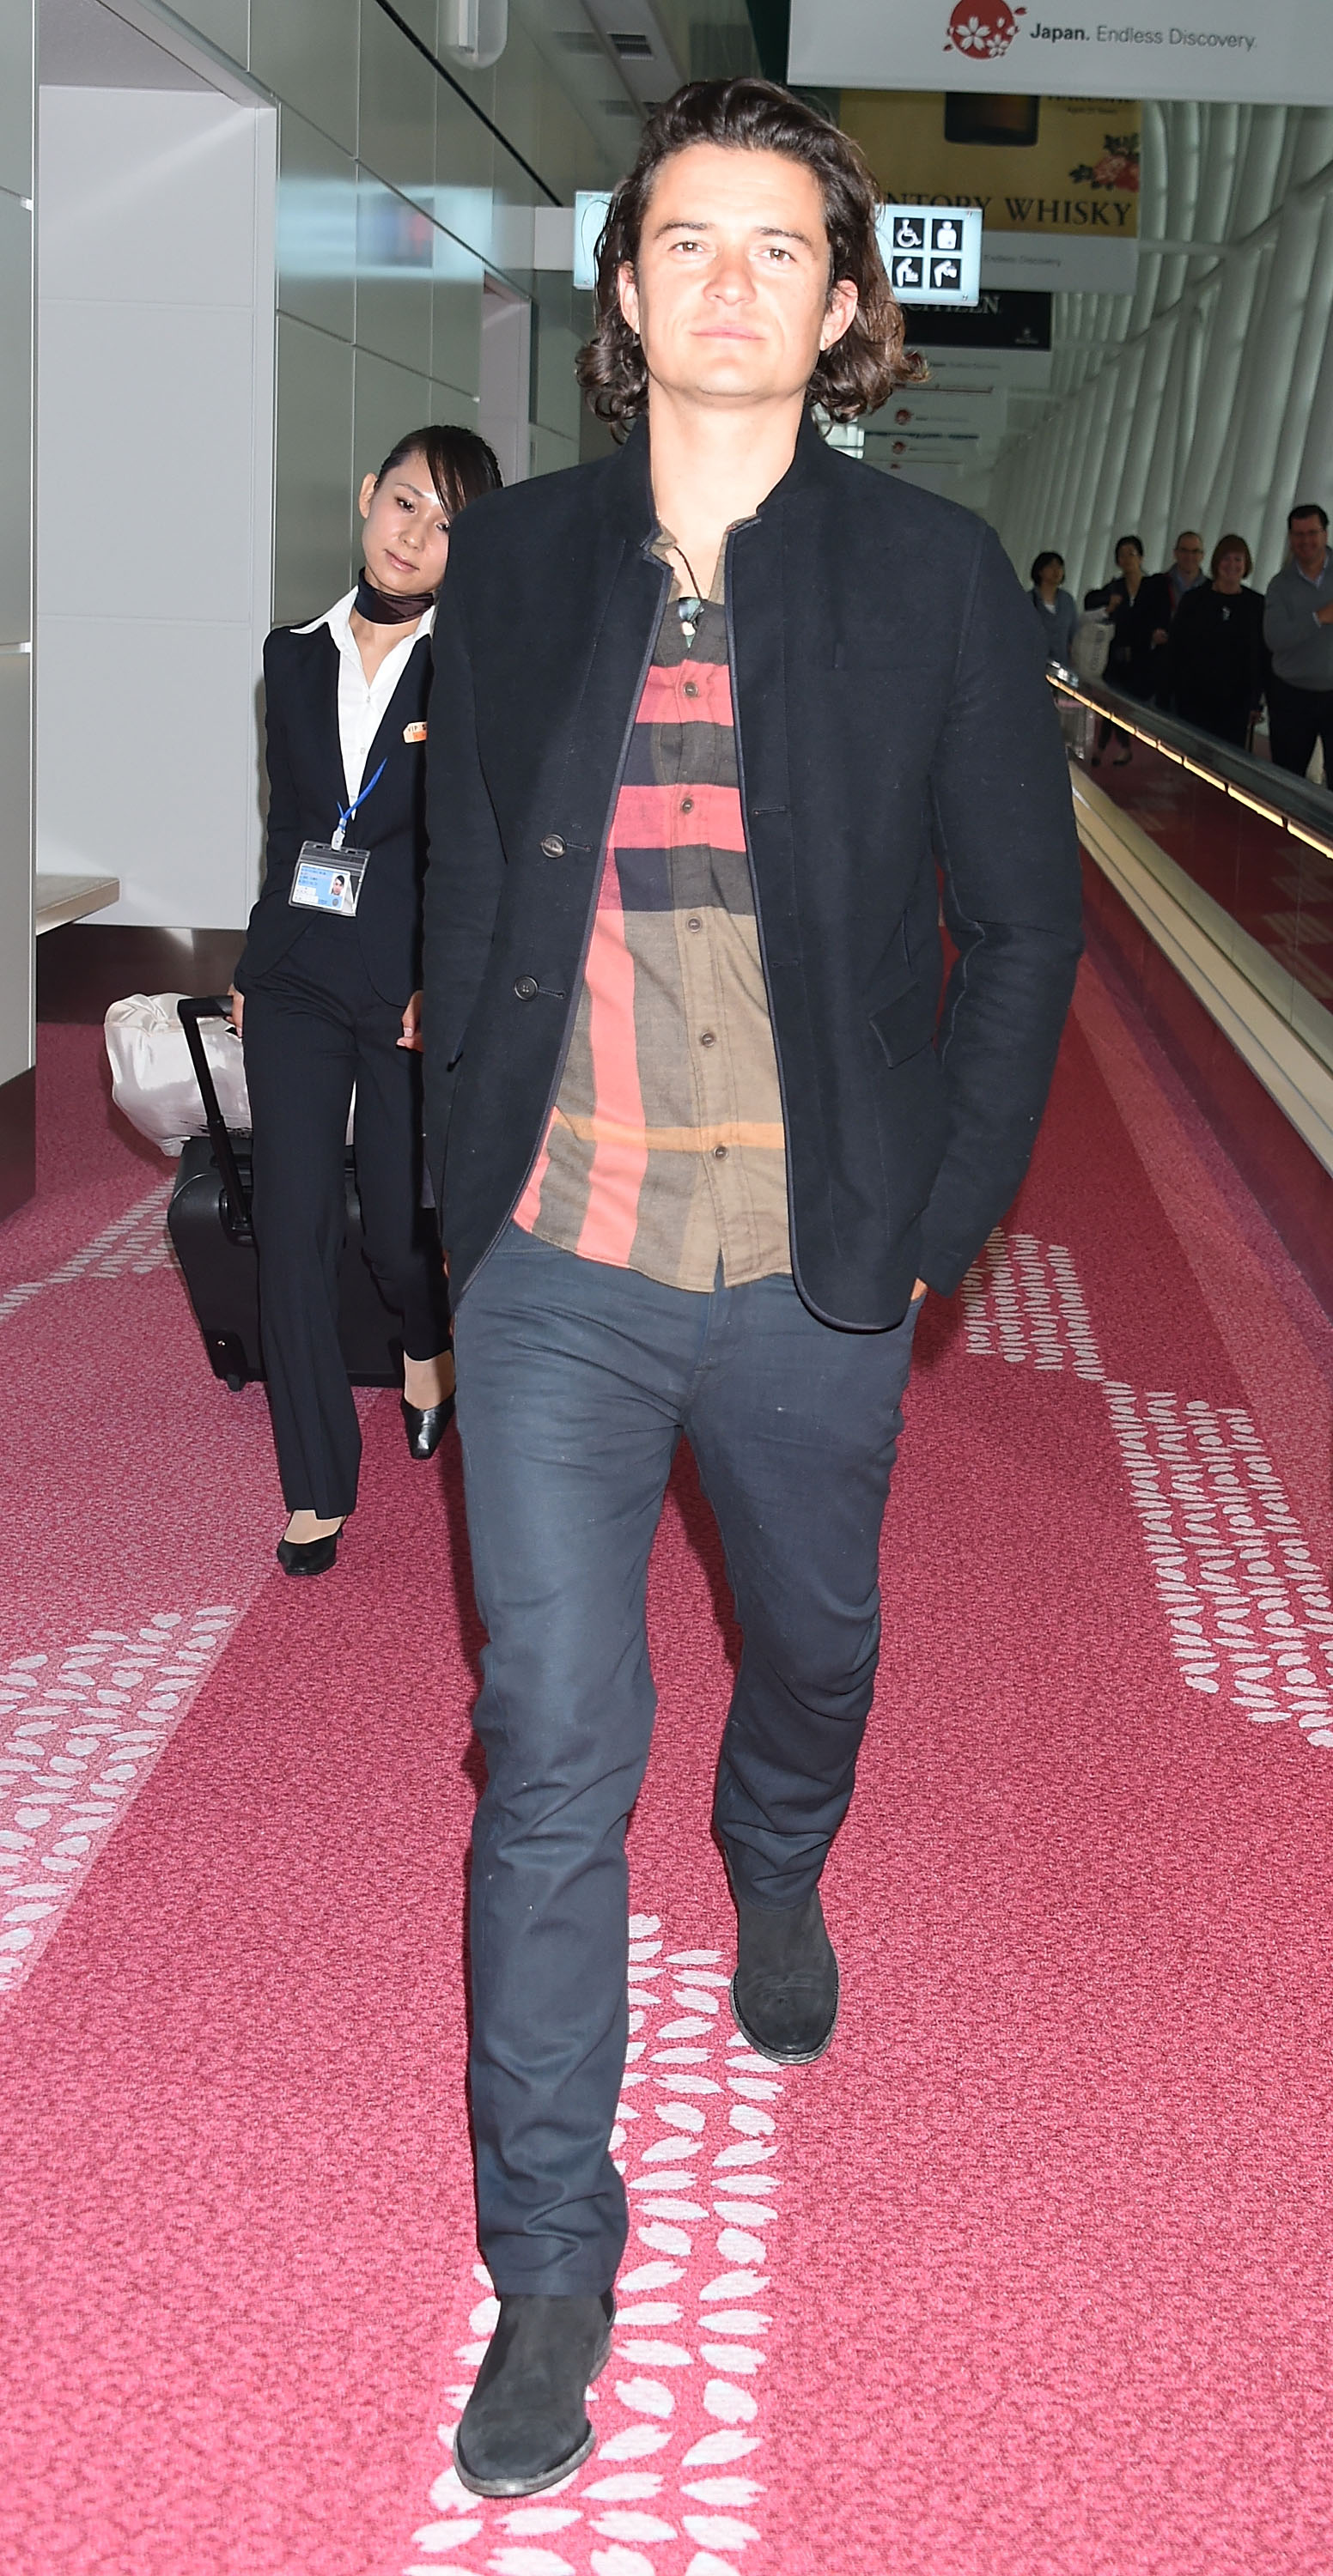 Orlando Bloom Spotted in Burberry Jacket